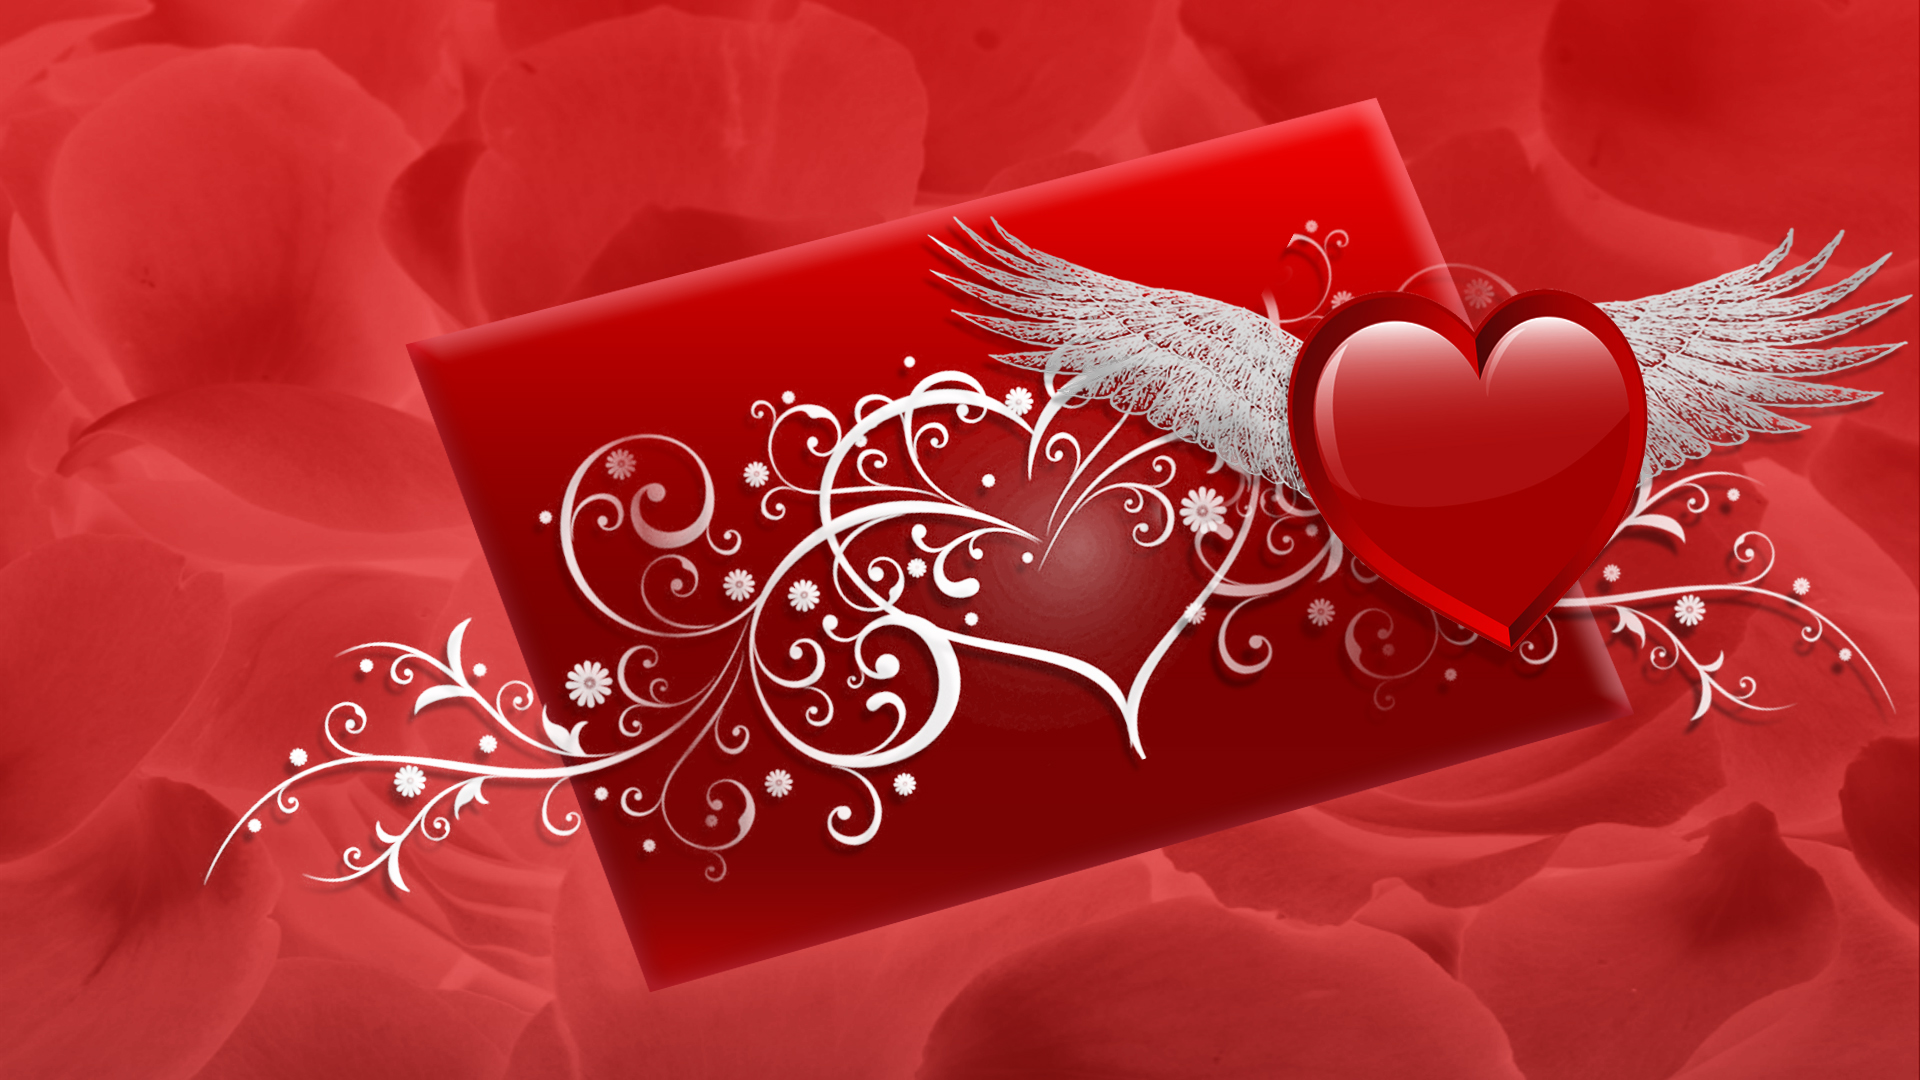 Back Gallery For valentine wallpaper and screen savers 1920x1080